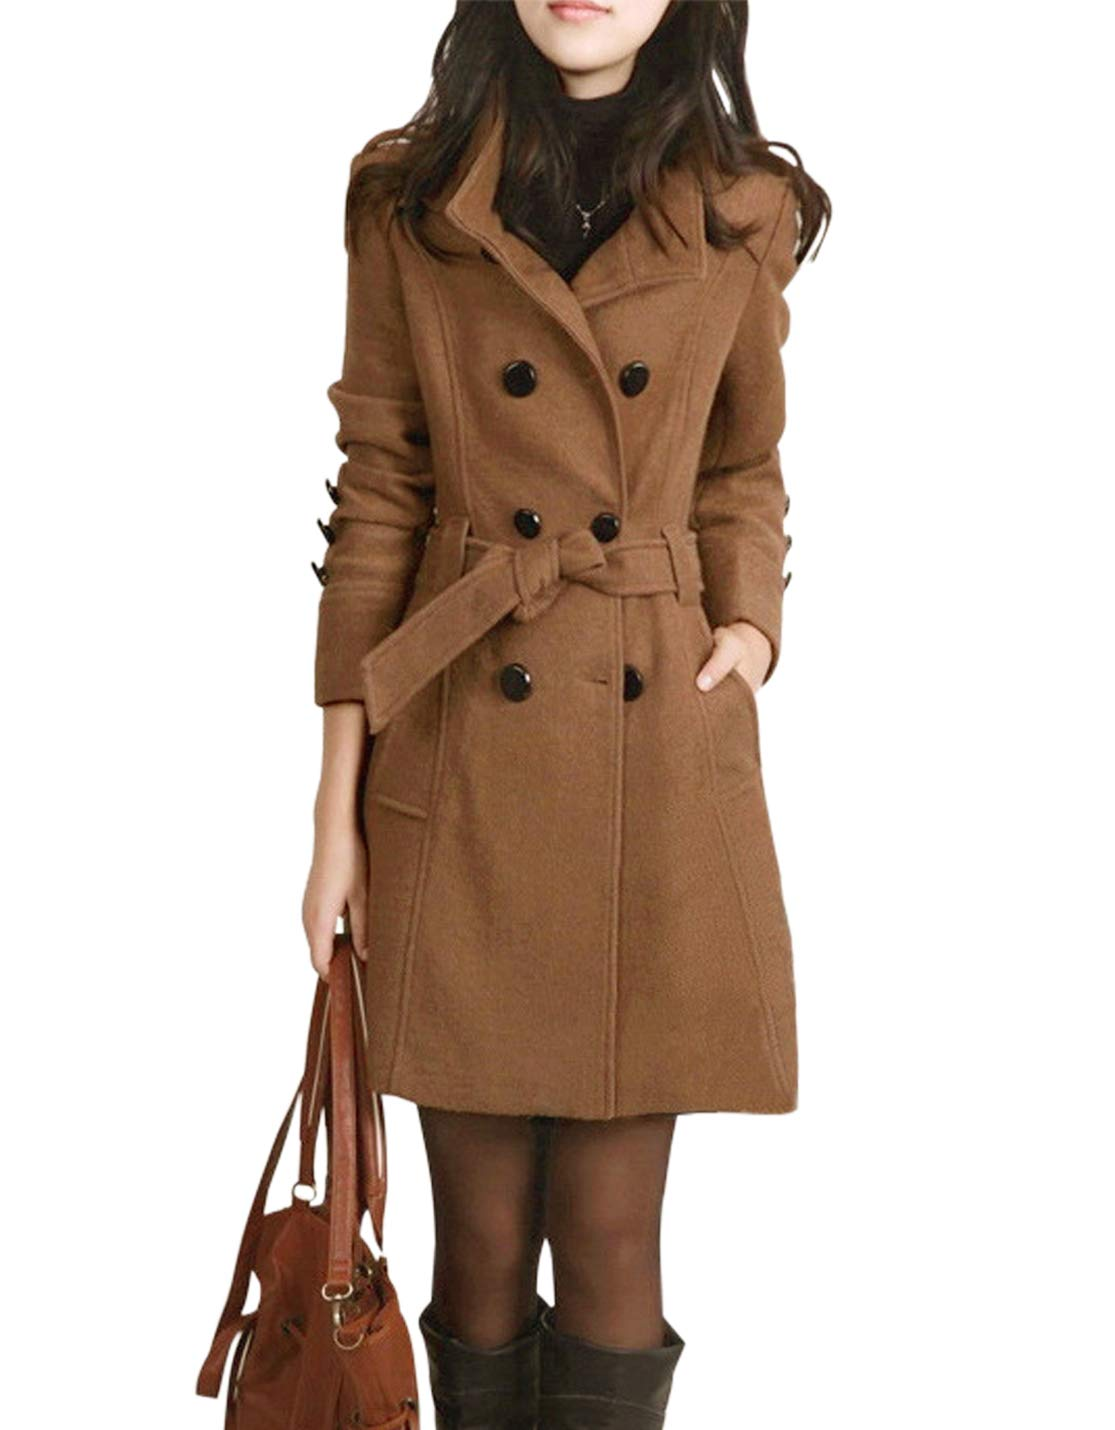 Jenkoon Women's Winter Double Breasted Stand Collar Button Pea Coat Trench Coat with Belt (Camel, X-Large) by Jenkoon